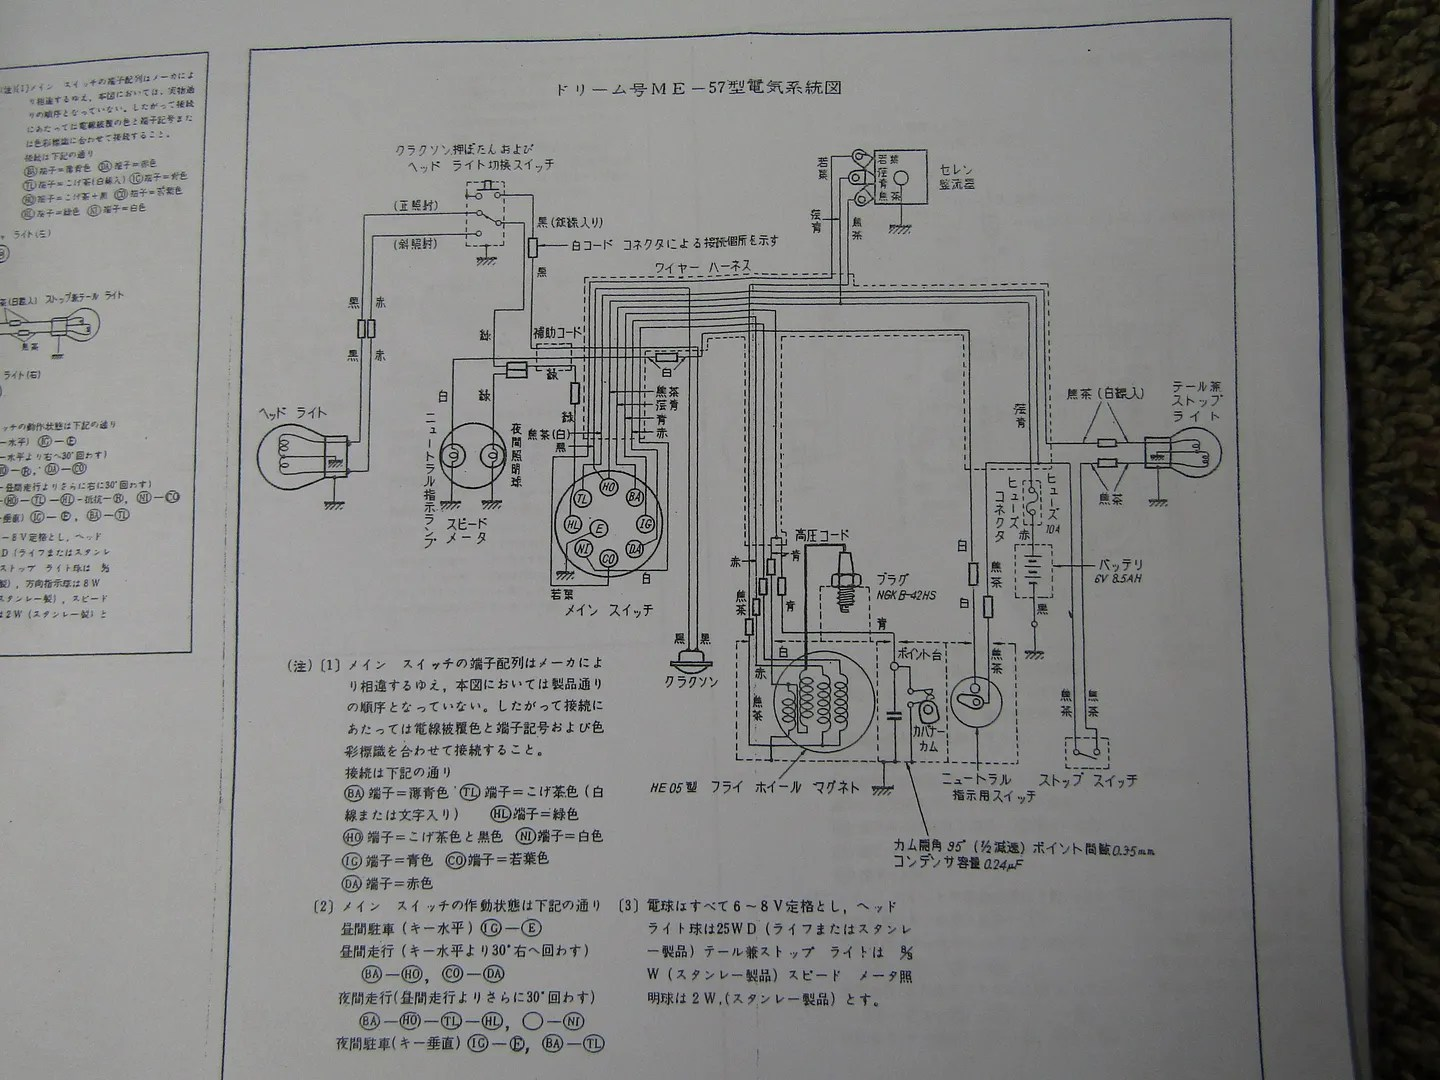 Help with translation please, Japanese wiring schematic - AR15COM